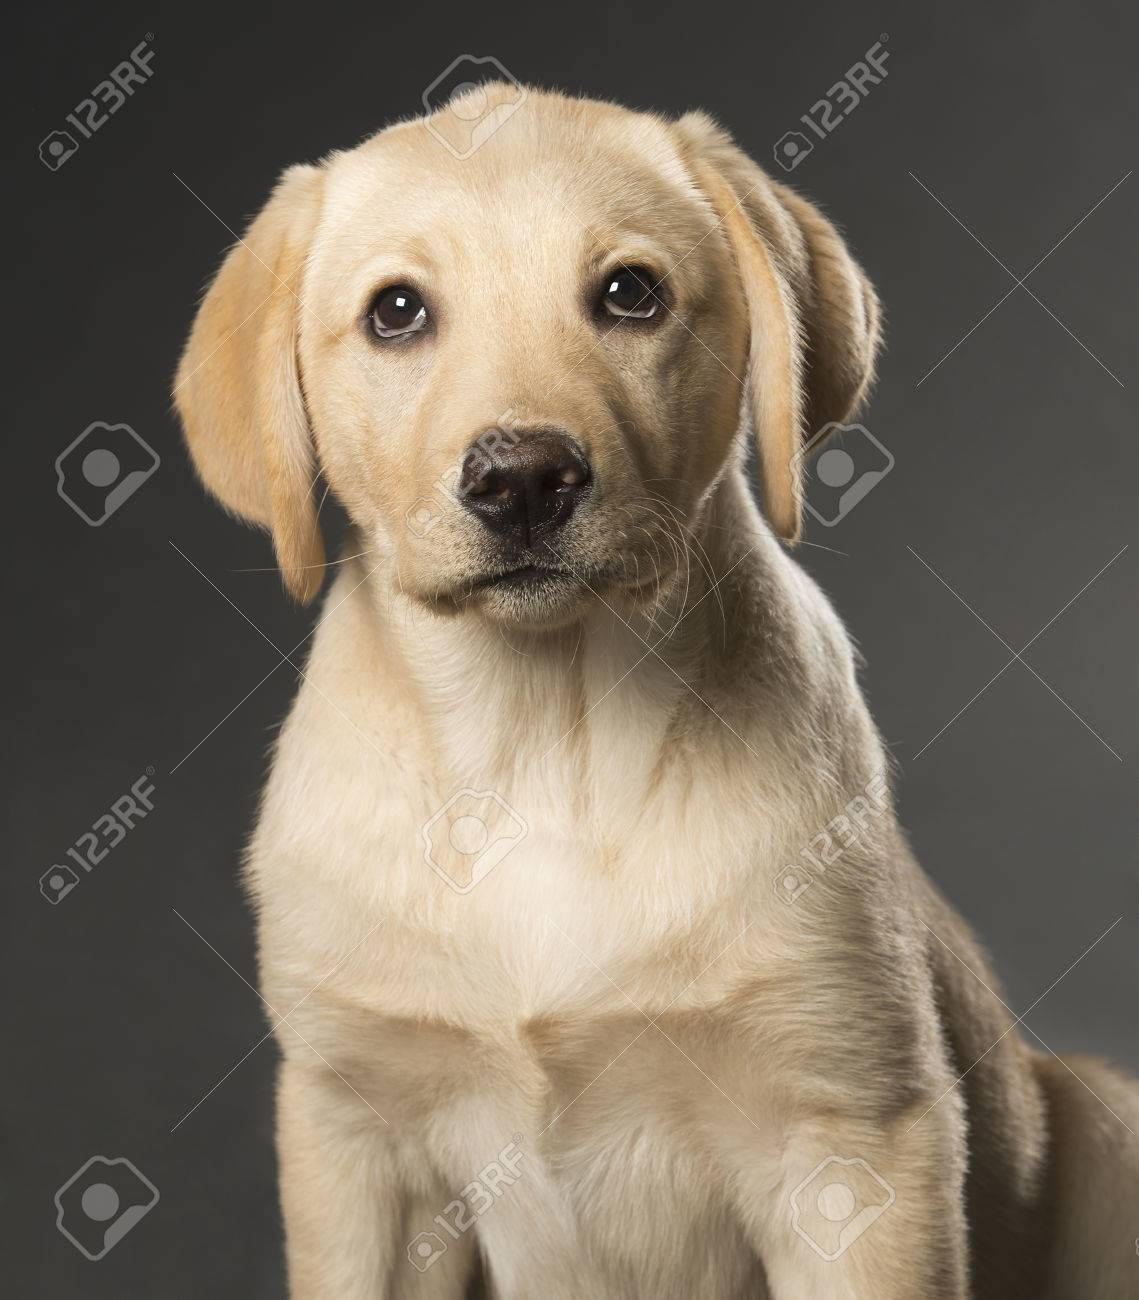 Beautiful Labrador retriever, champagne colored, isolated on